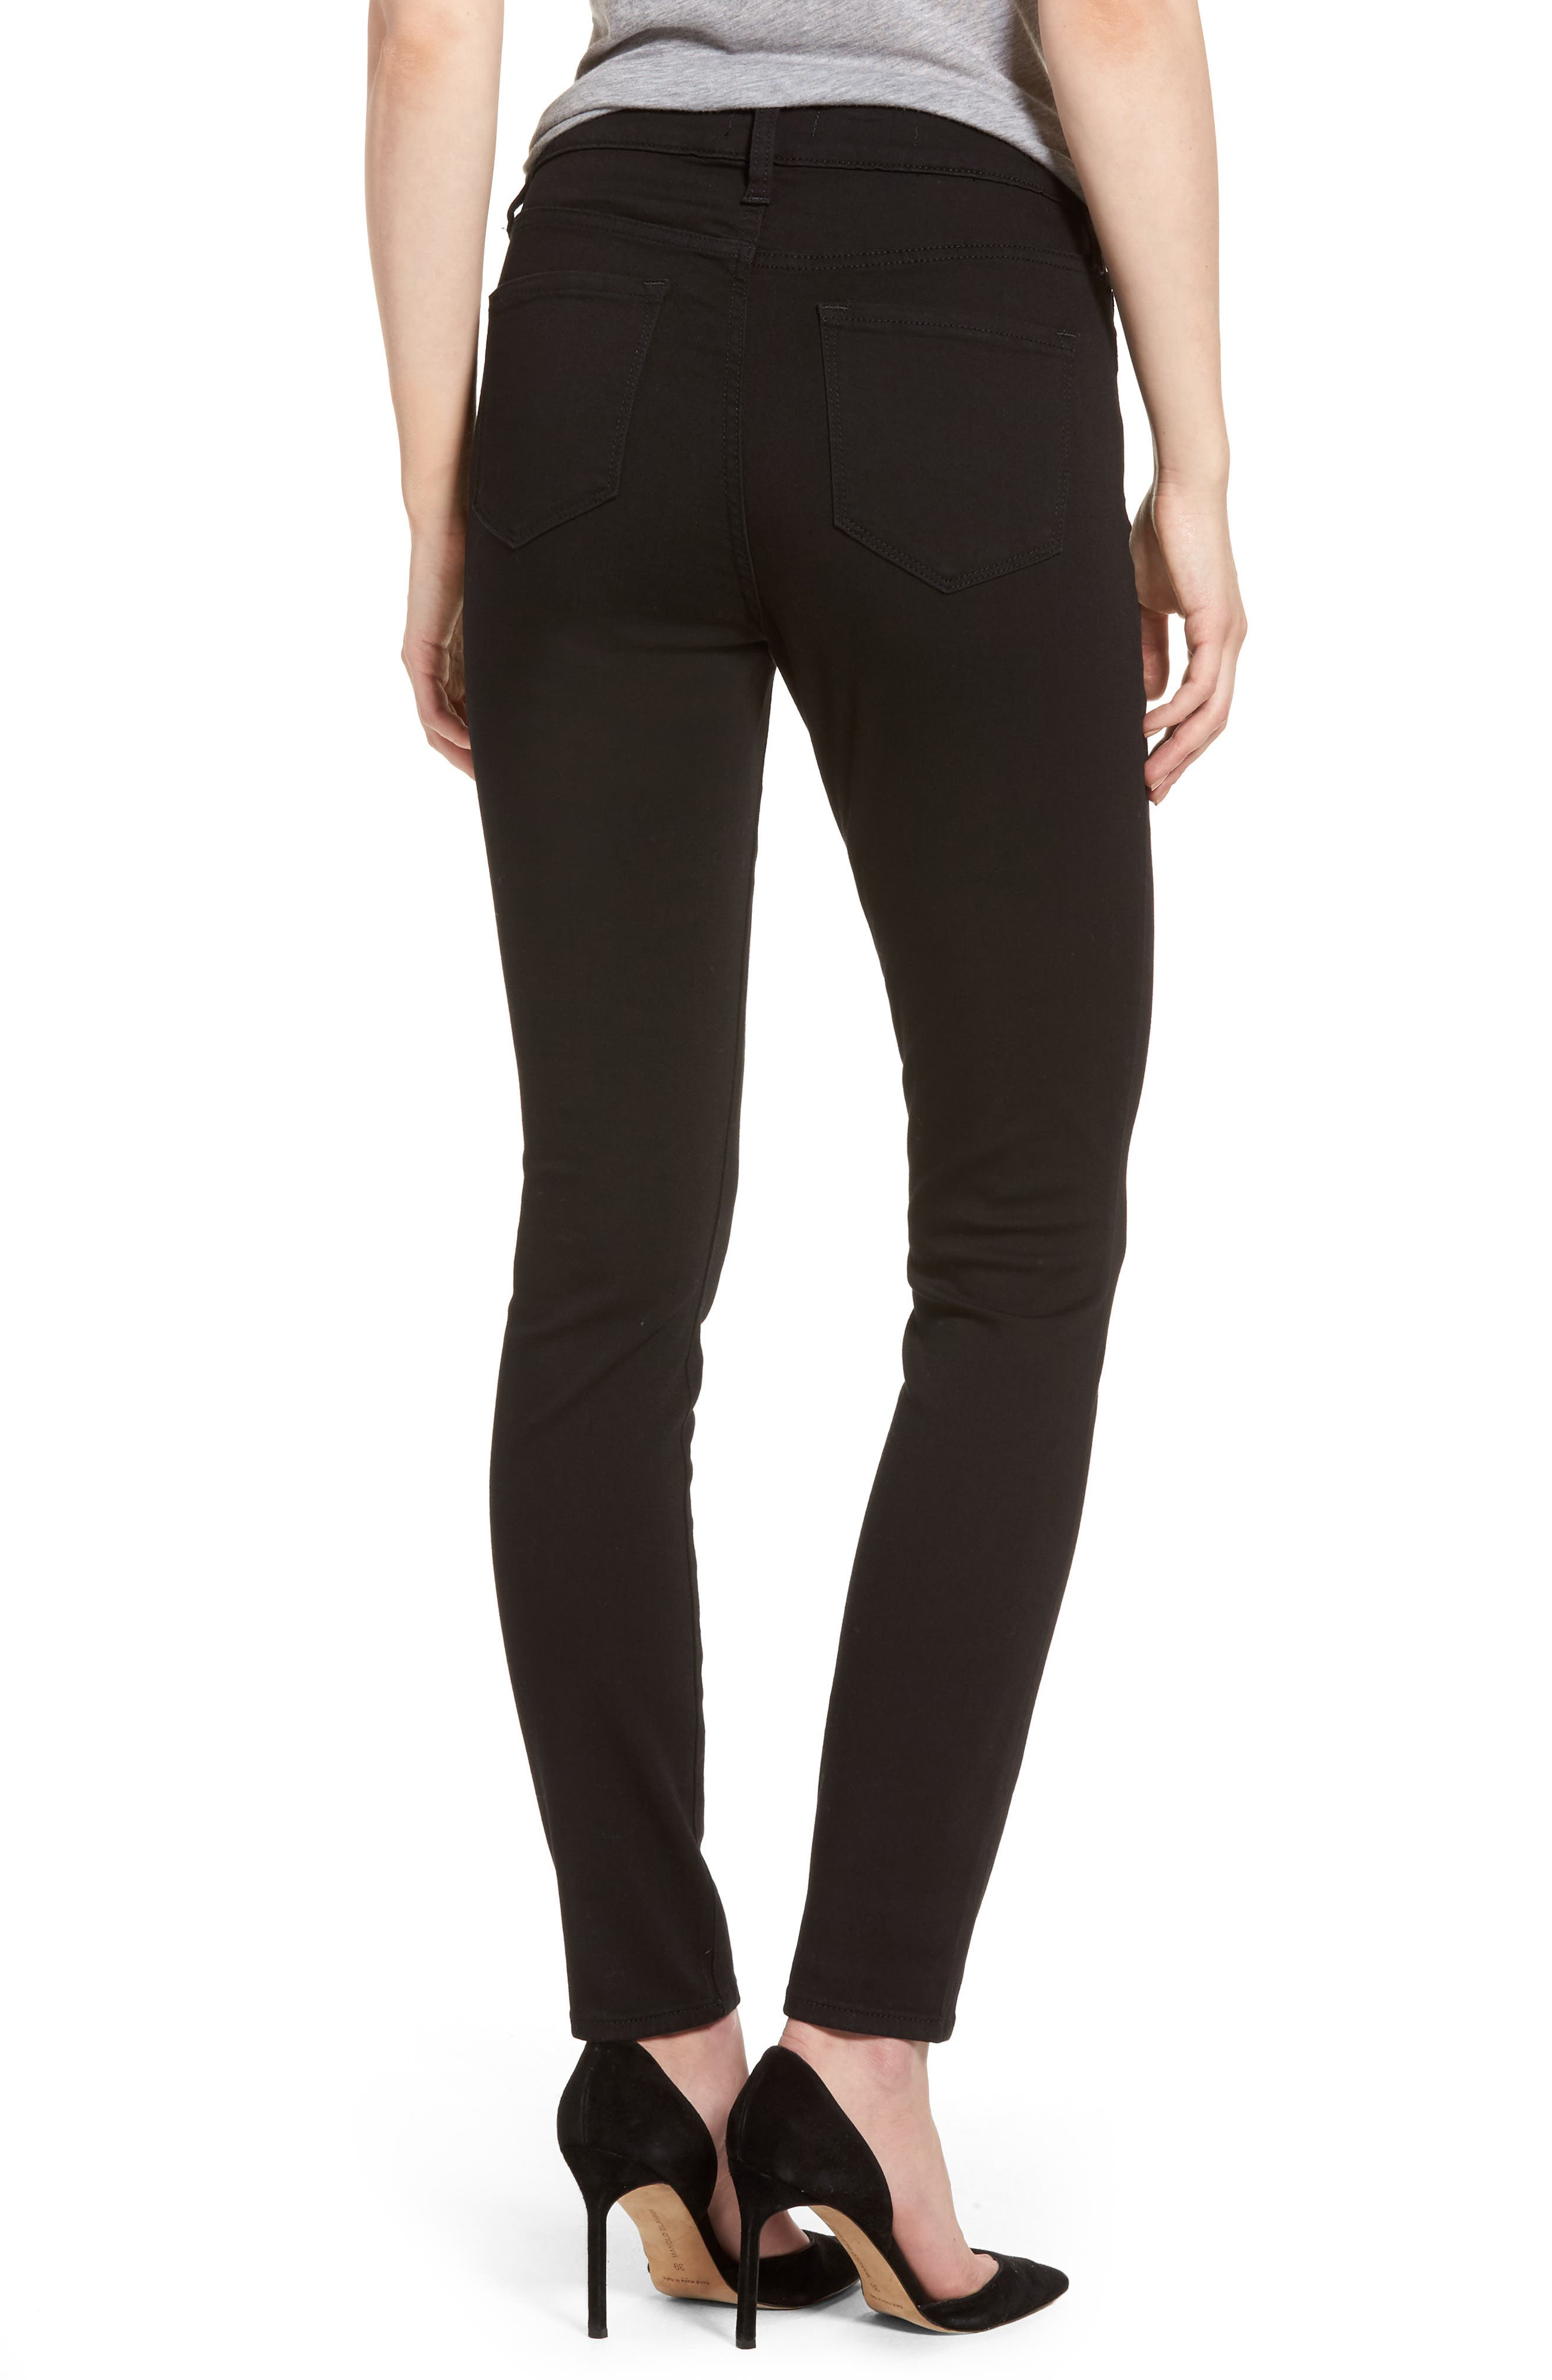 Ami Stretch Skinny Jeans,                             Alternate thumbnail 3, color,                             001